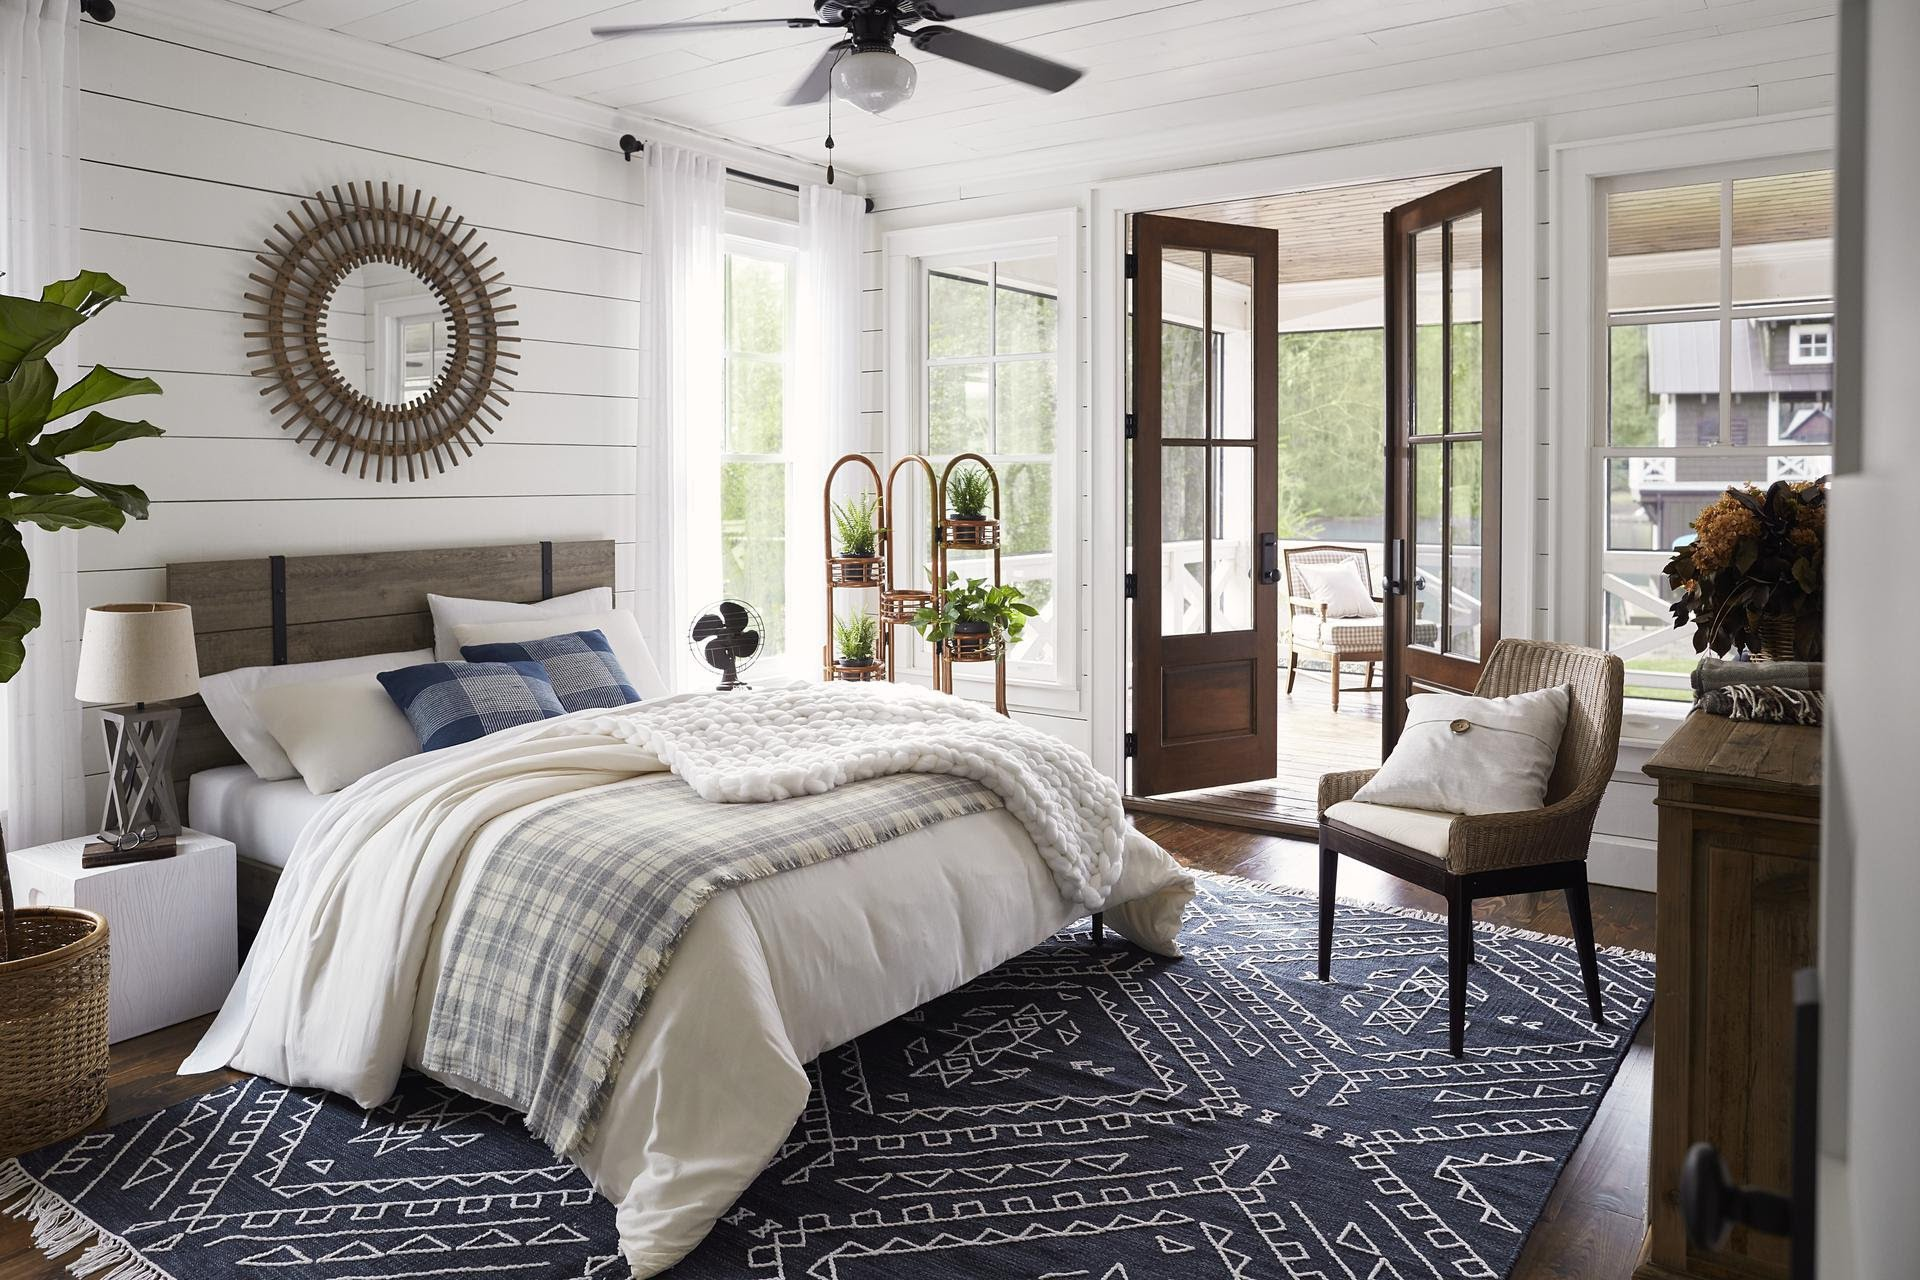 Lake House Bedroom Paint Color Ideas Furniture & Decor Ideas Setting for Four